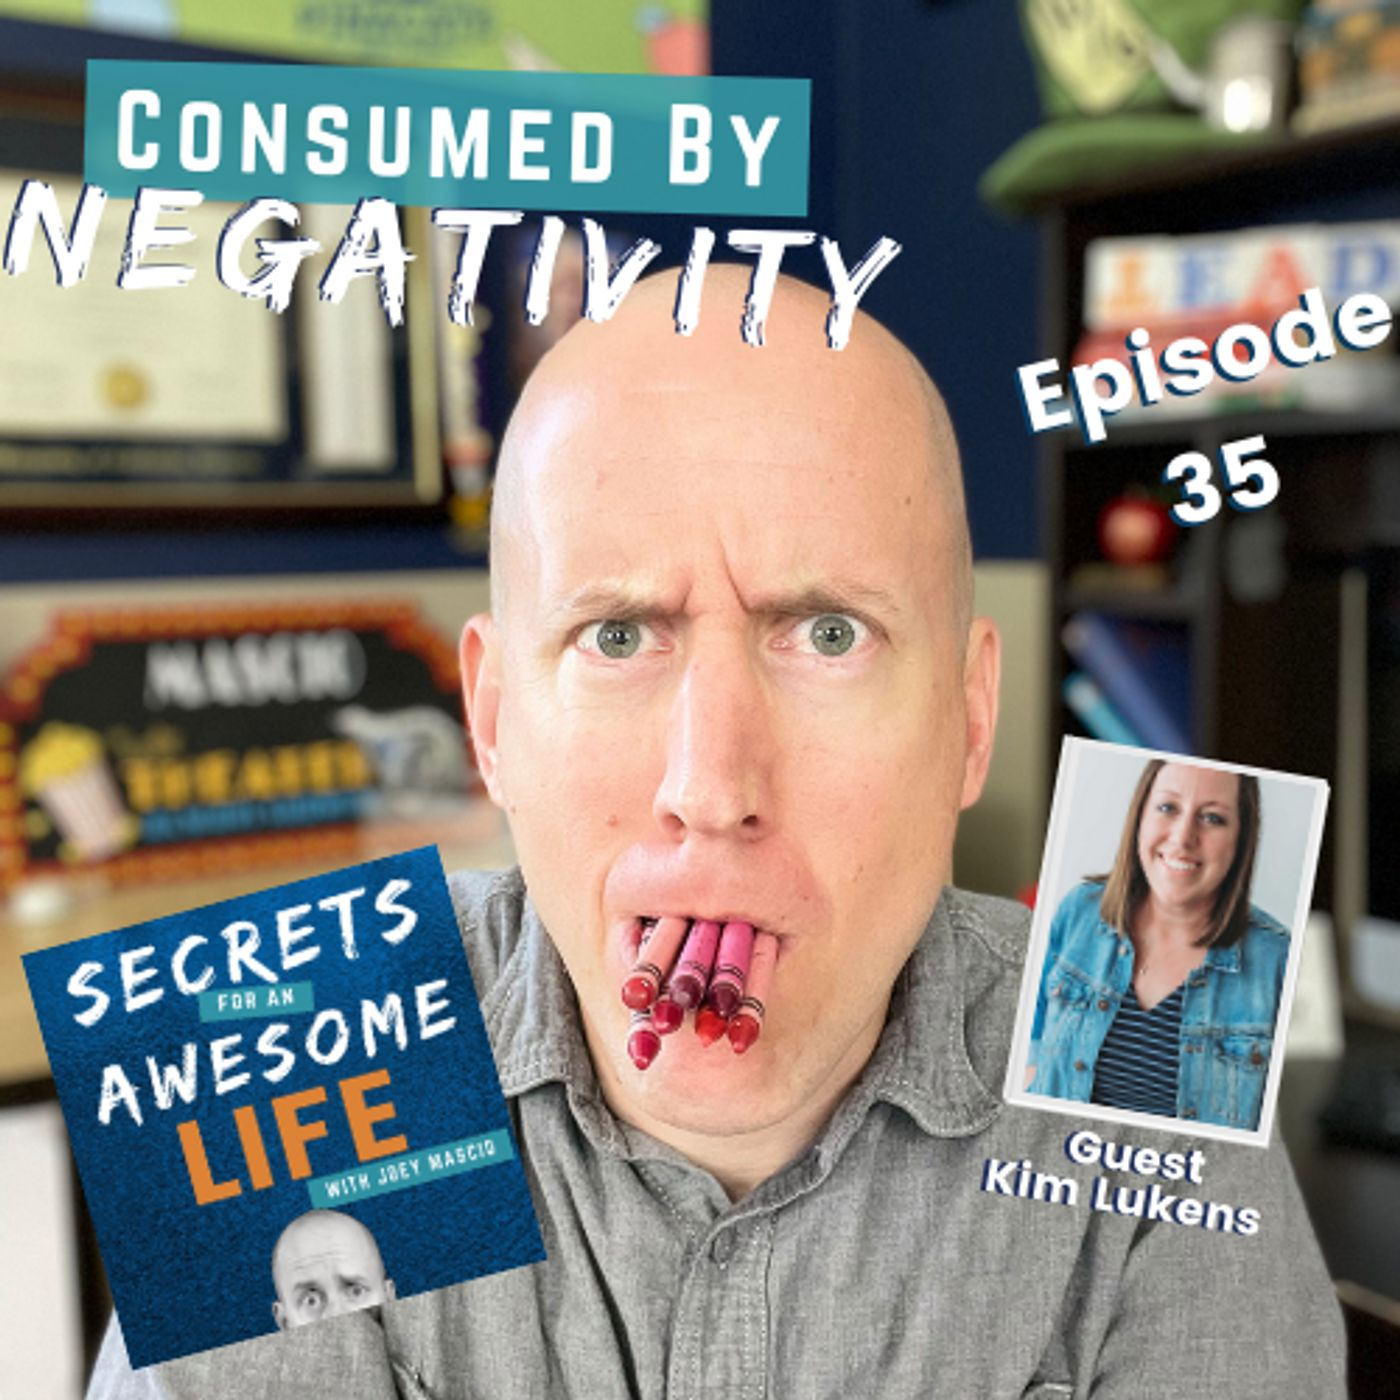 Consumed by Negativity?